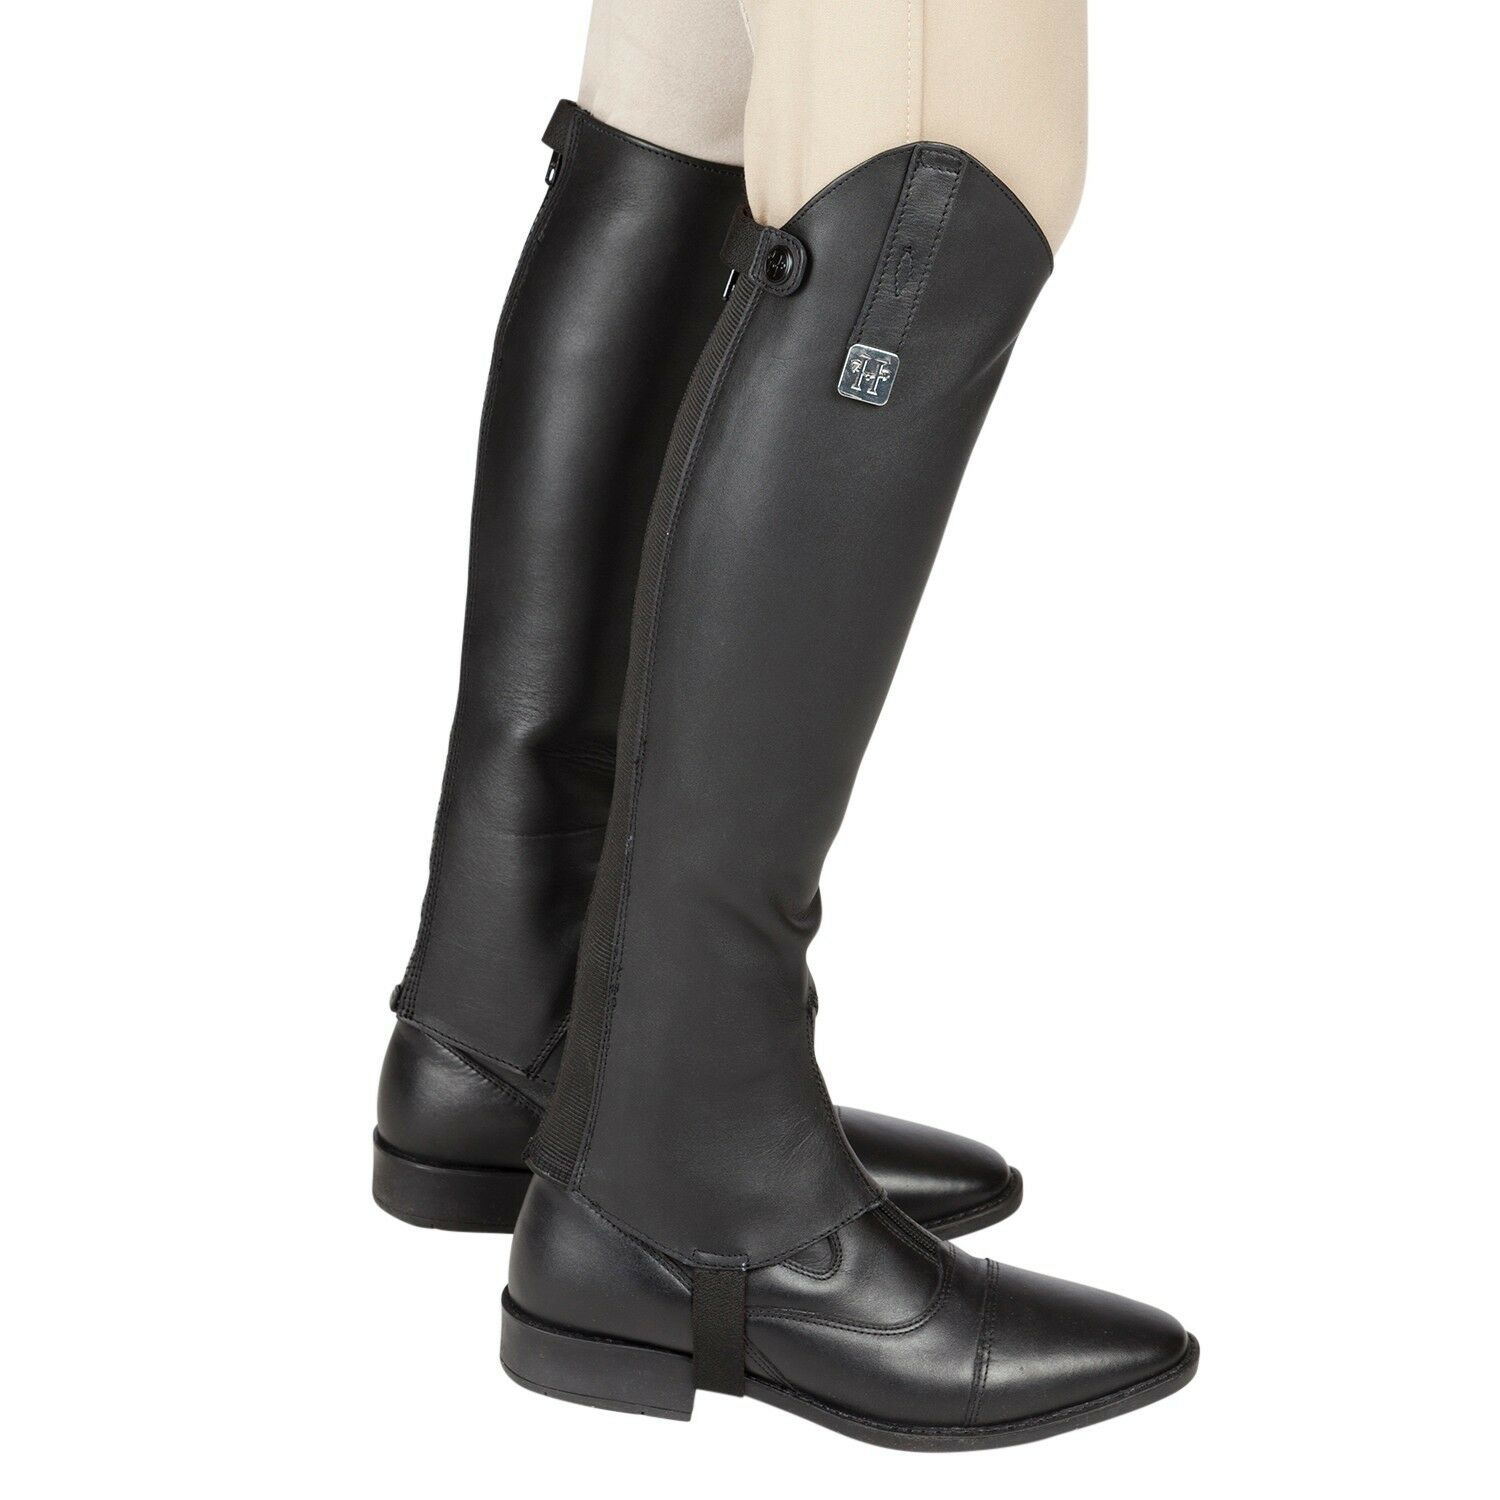 Huntley Equestrian Custom Fit Premium Leder Half Chaps